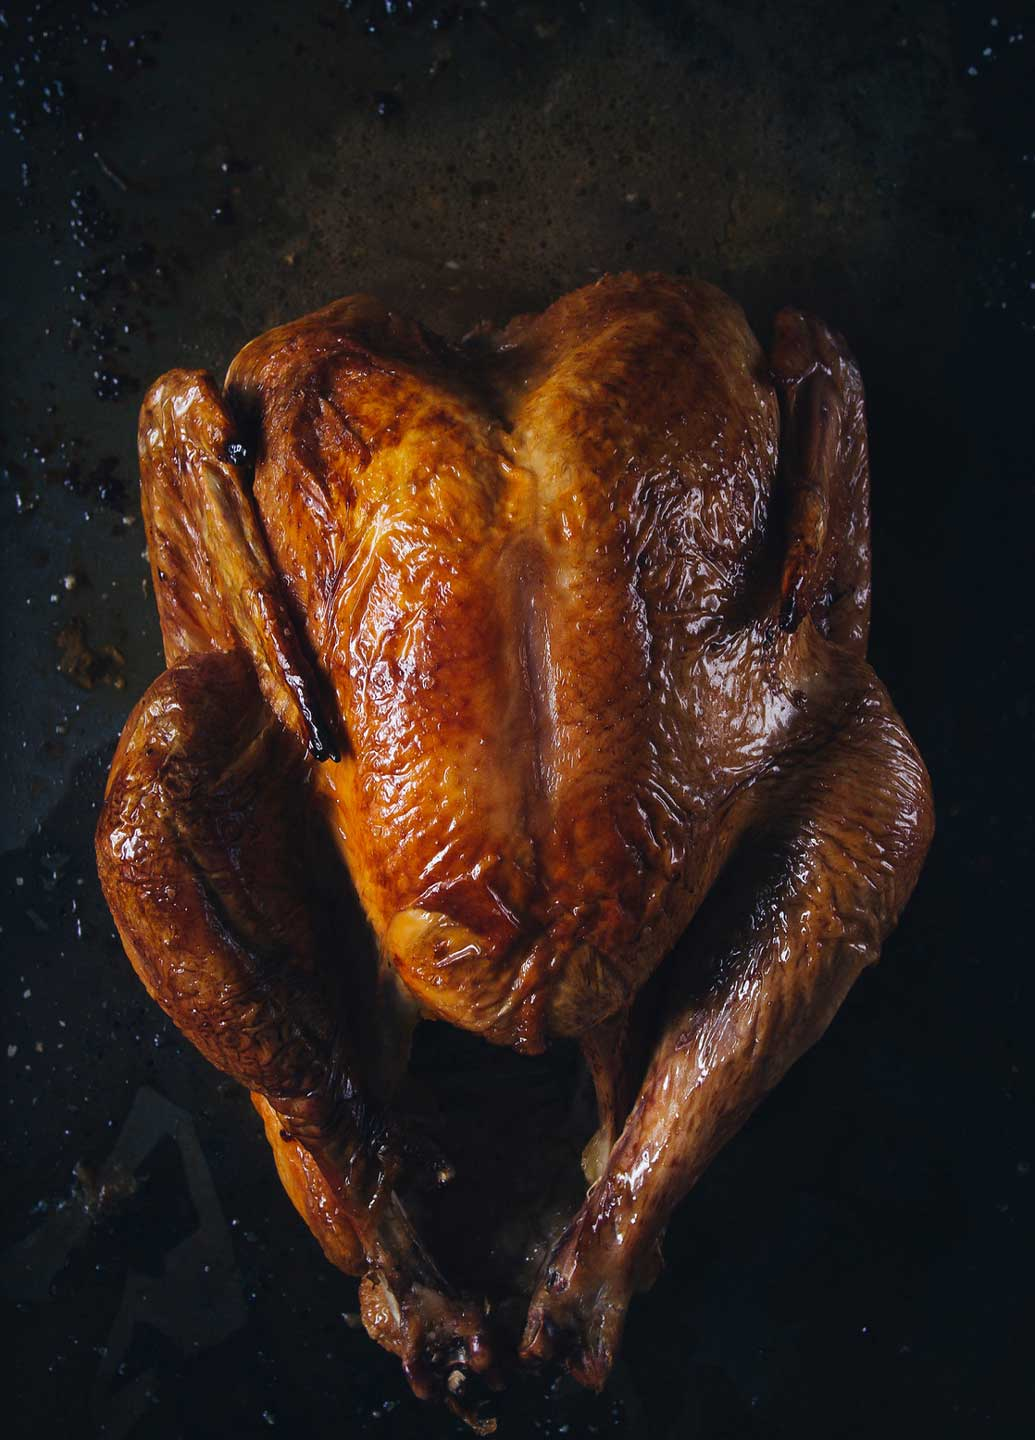 Ever wonder: can you cook a turkey in an Instant Pot electric pressure cooker? You can! This gorgeous recipe for Instant Pot Turkey proves it!